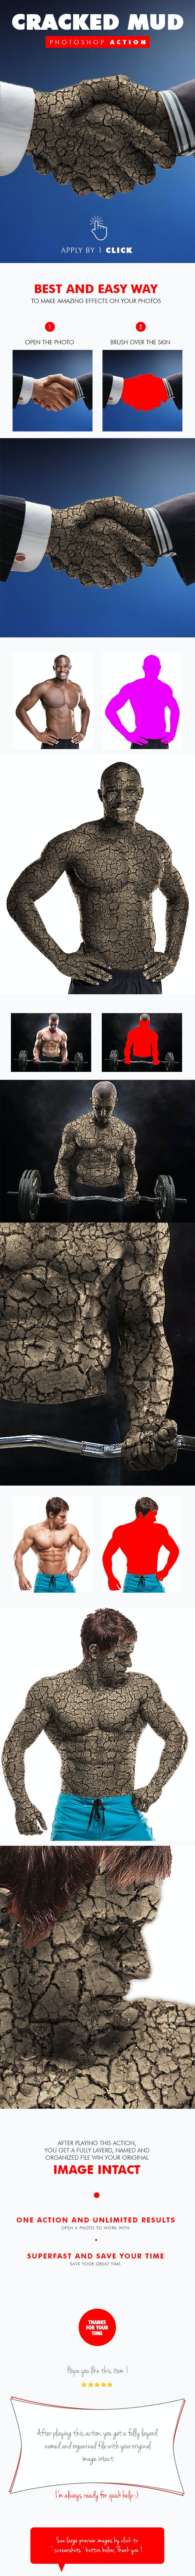 Cracked Mud Photoshop Action - Photo Effects Actions